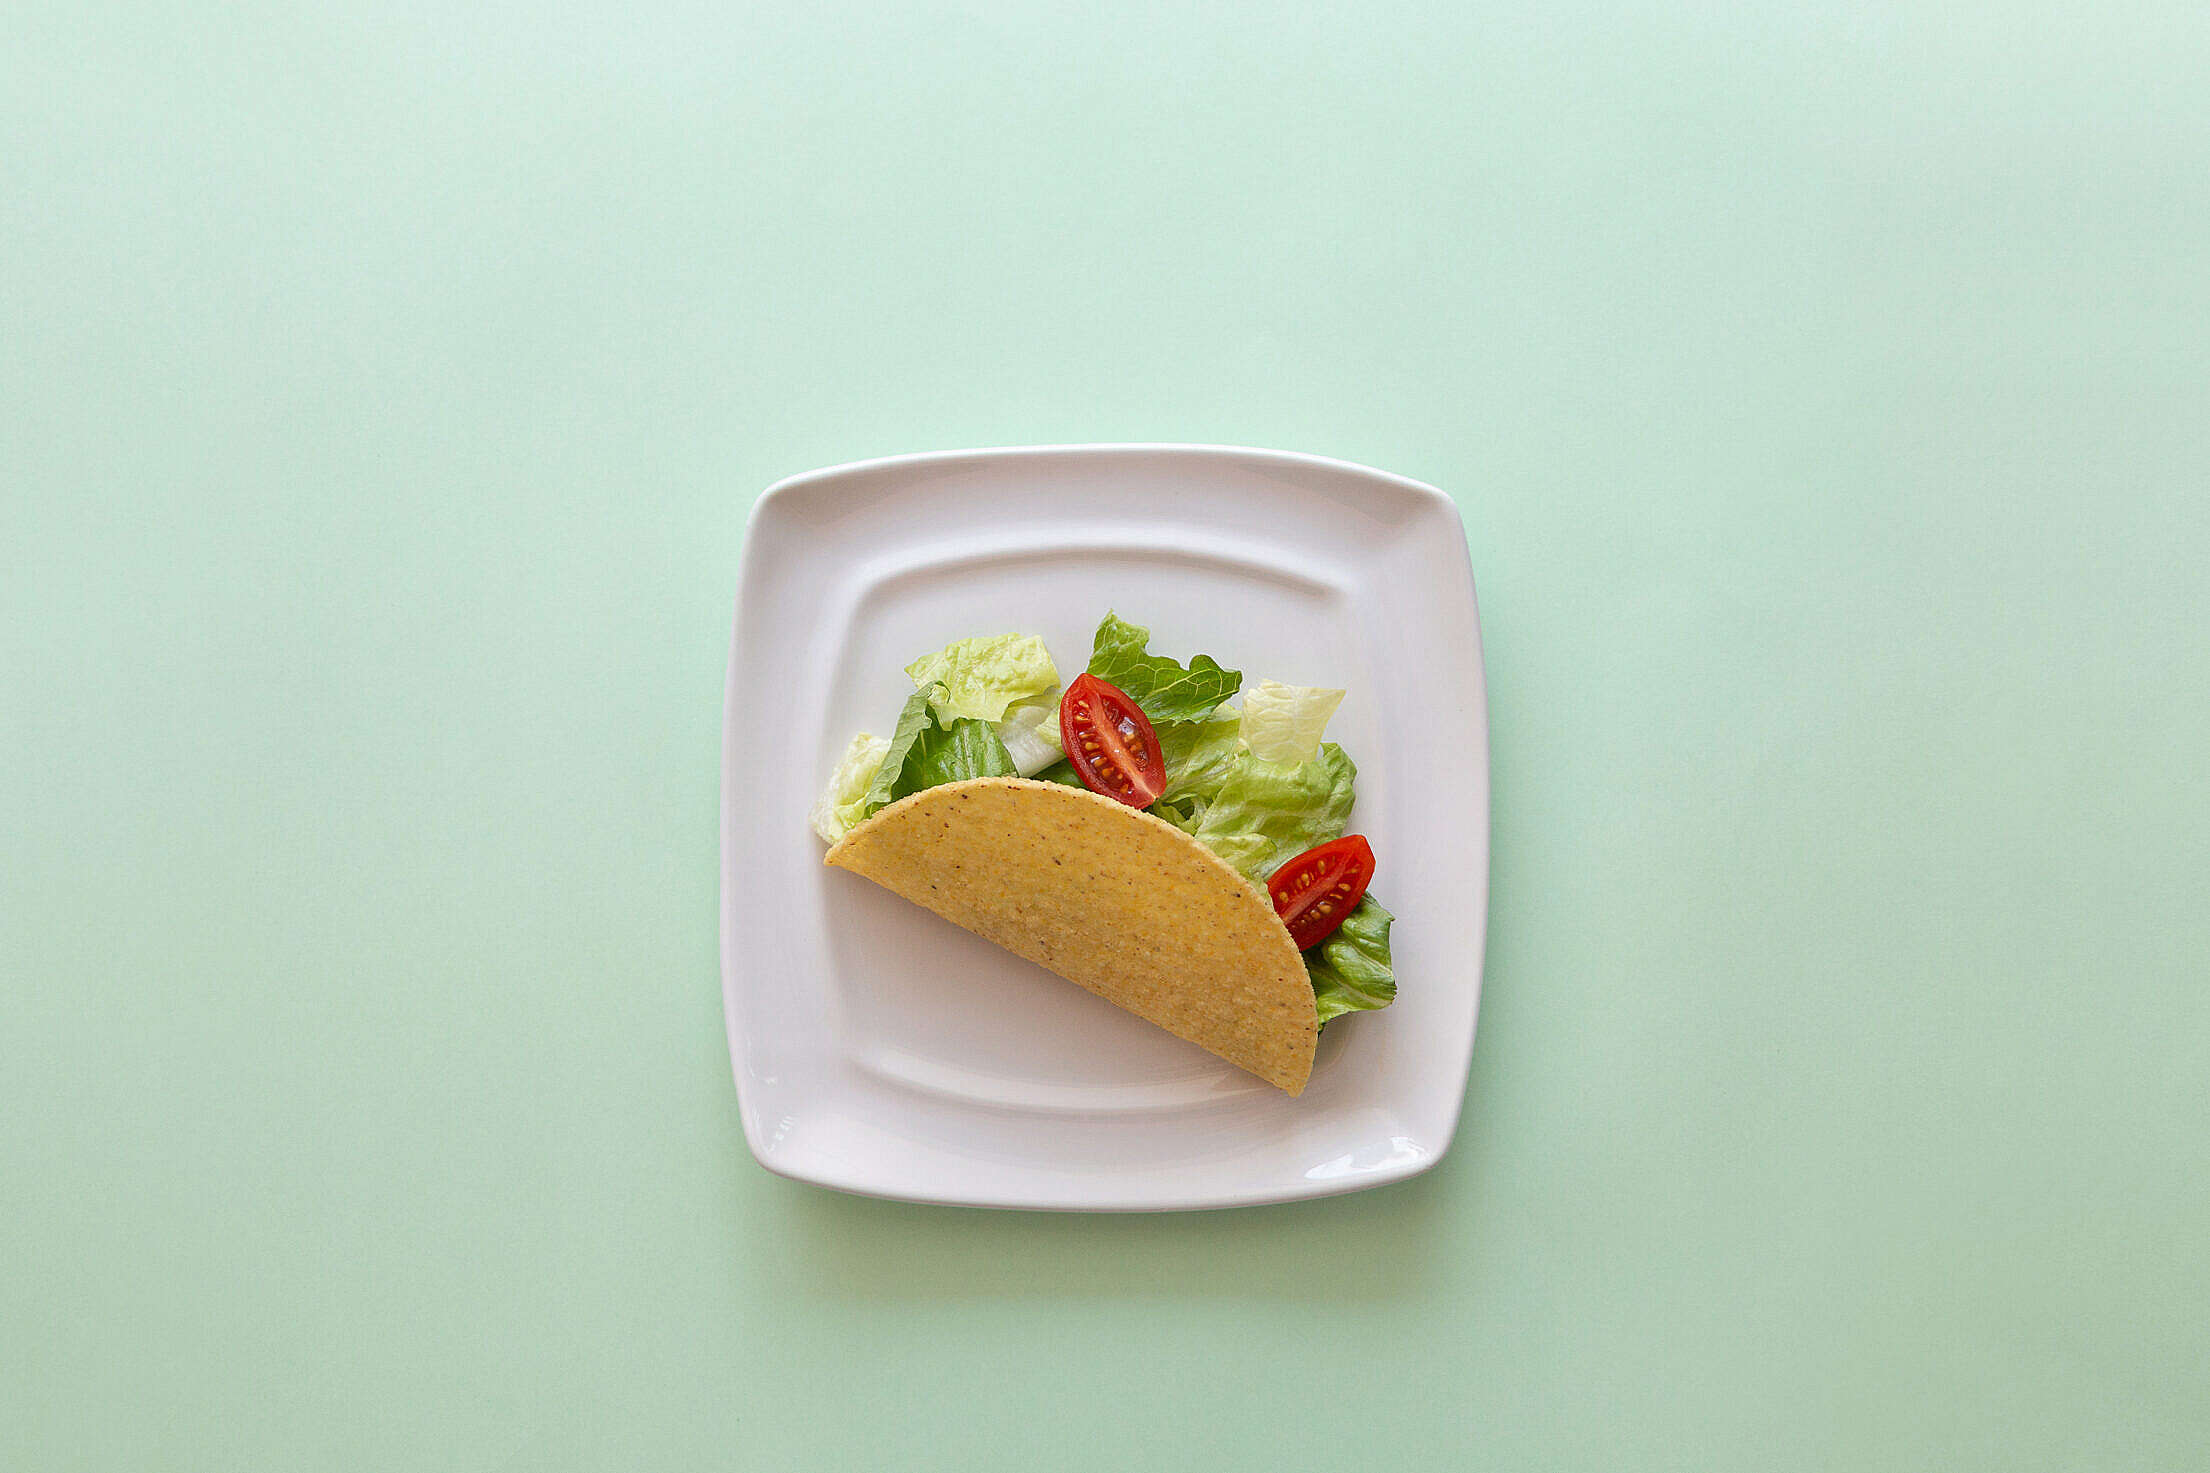 Healthy Taco with Place for Text Free Stock Photo